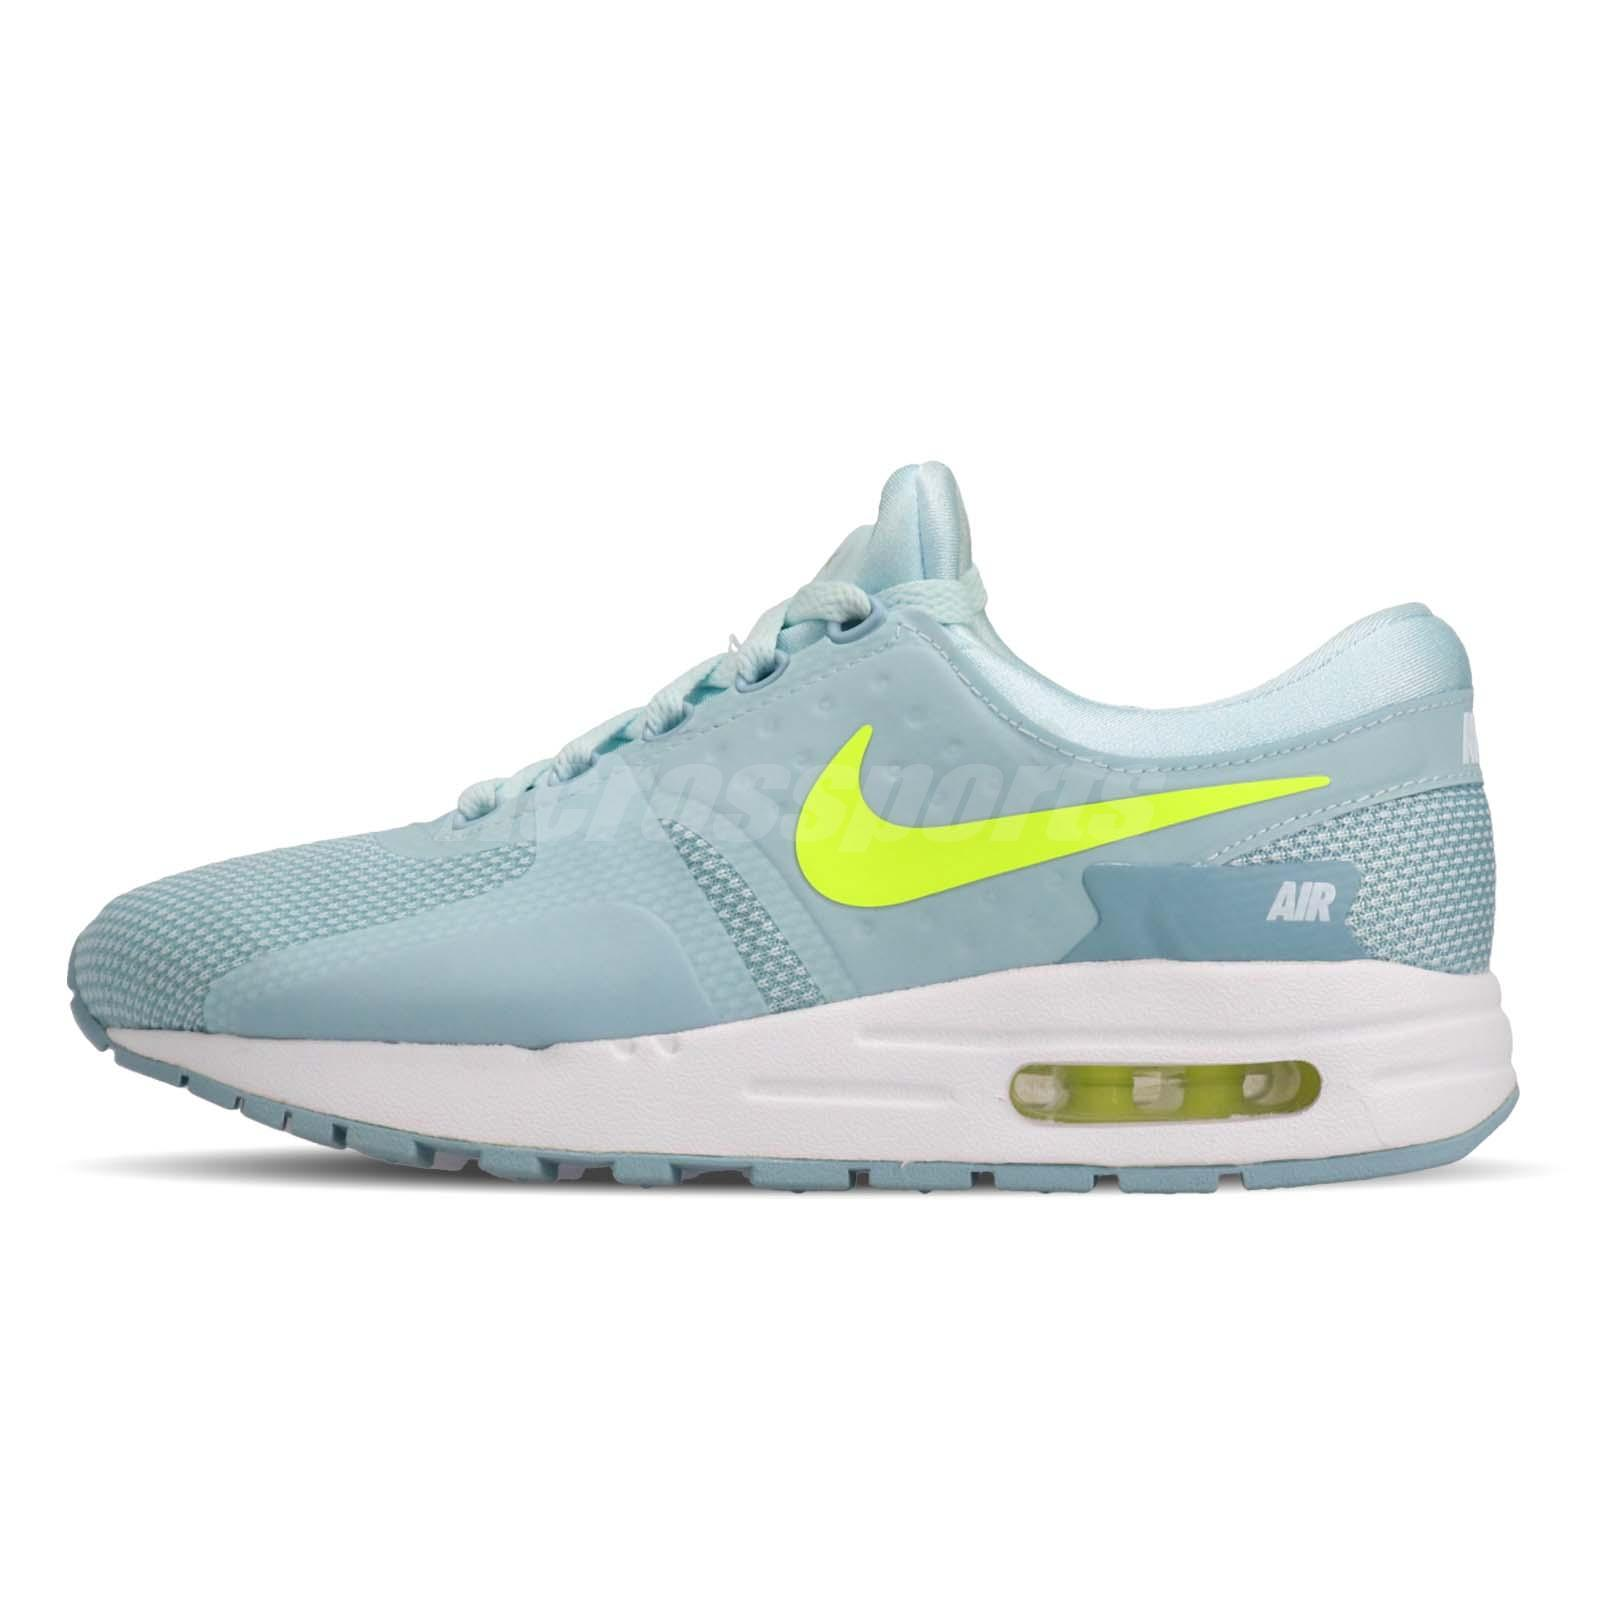 separation shoes 9a9b9 af965 Details about Nike Air Max Zero Essential GS Running Kids Youth Womens Shoes  Blue 881229-400